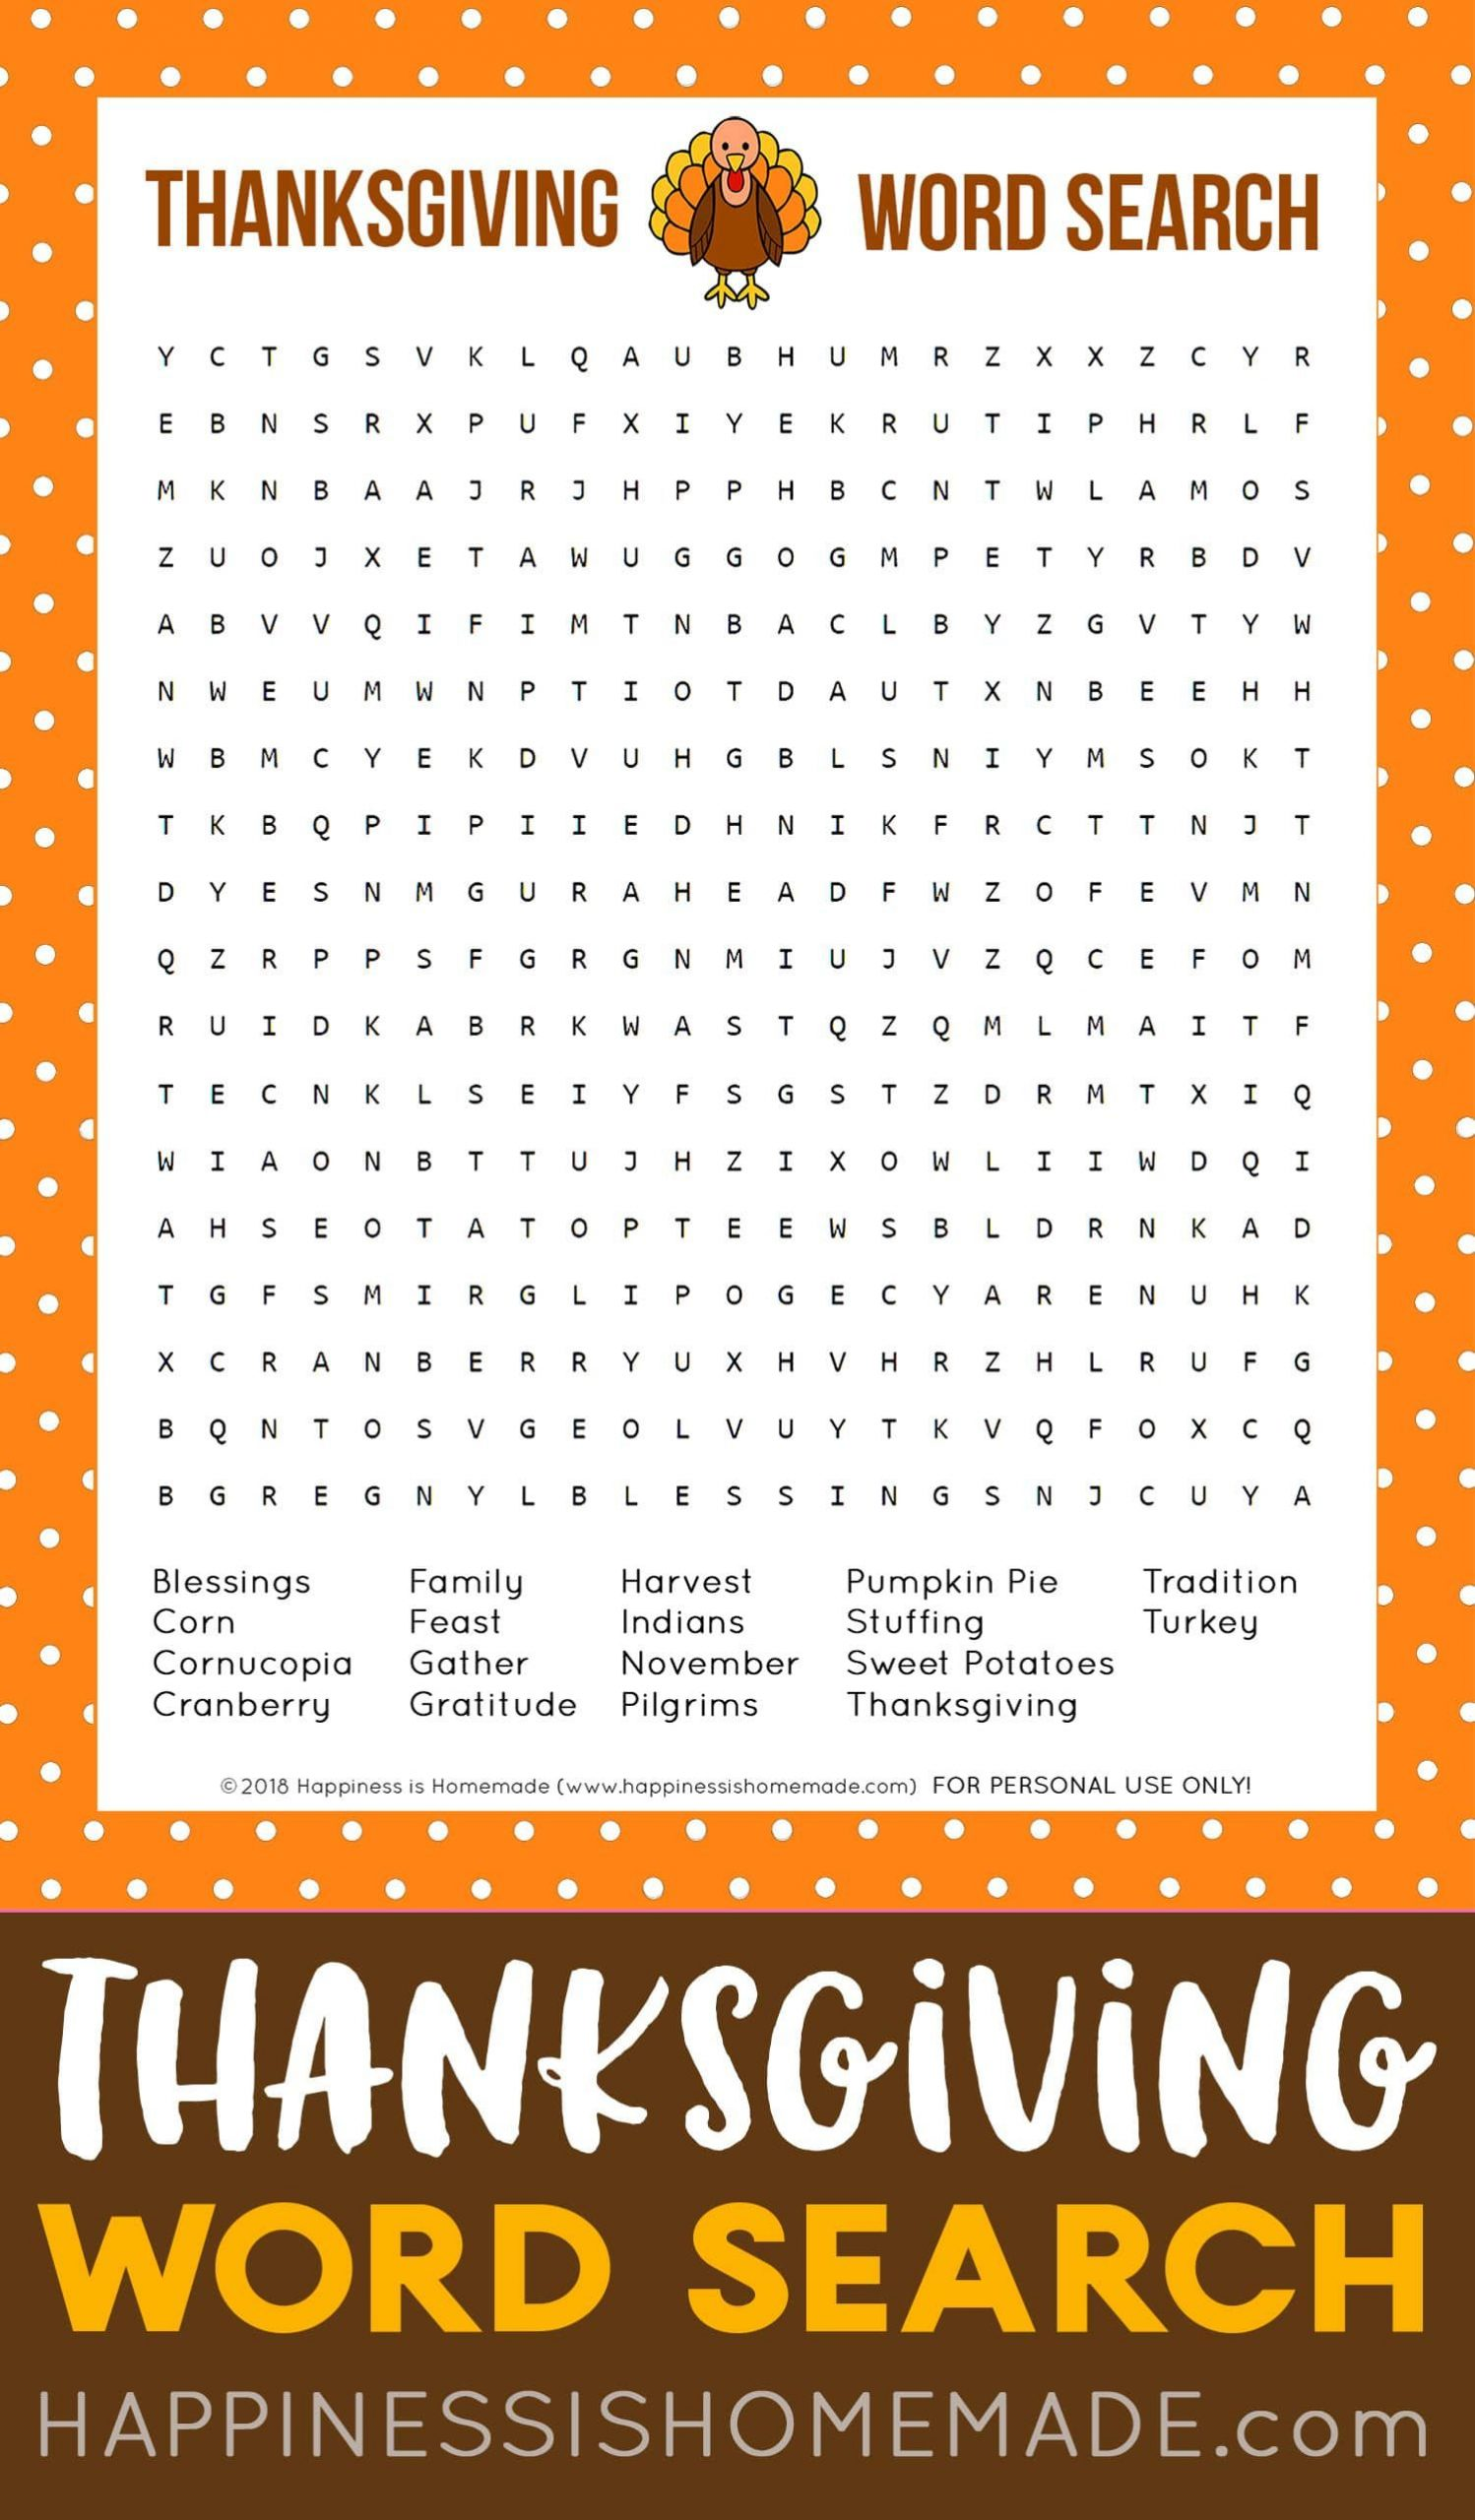 Free Thanksgiving Word Search Printable Game: This